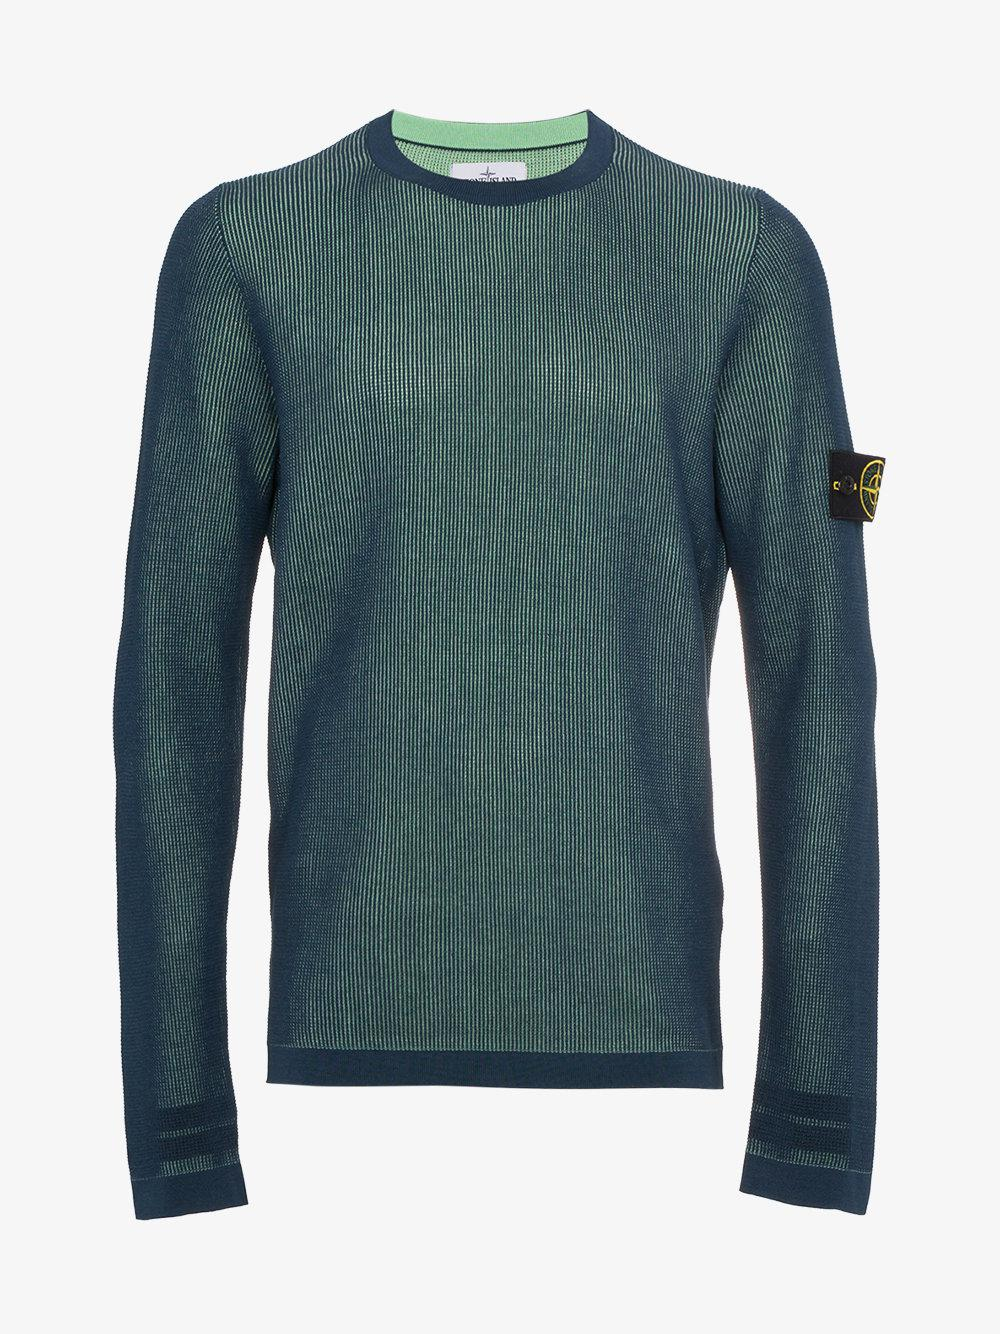 lyst stone island logo patch pullover in blue for men save 8. Black Bedroom Furniture Sets. Home Design Ideas